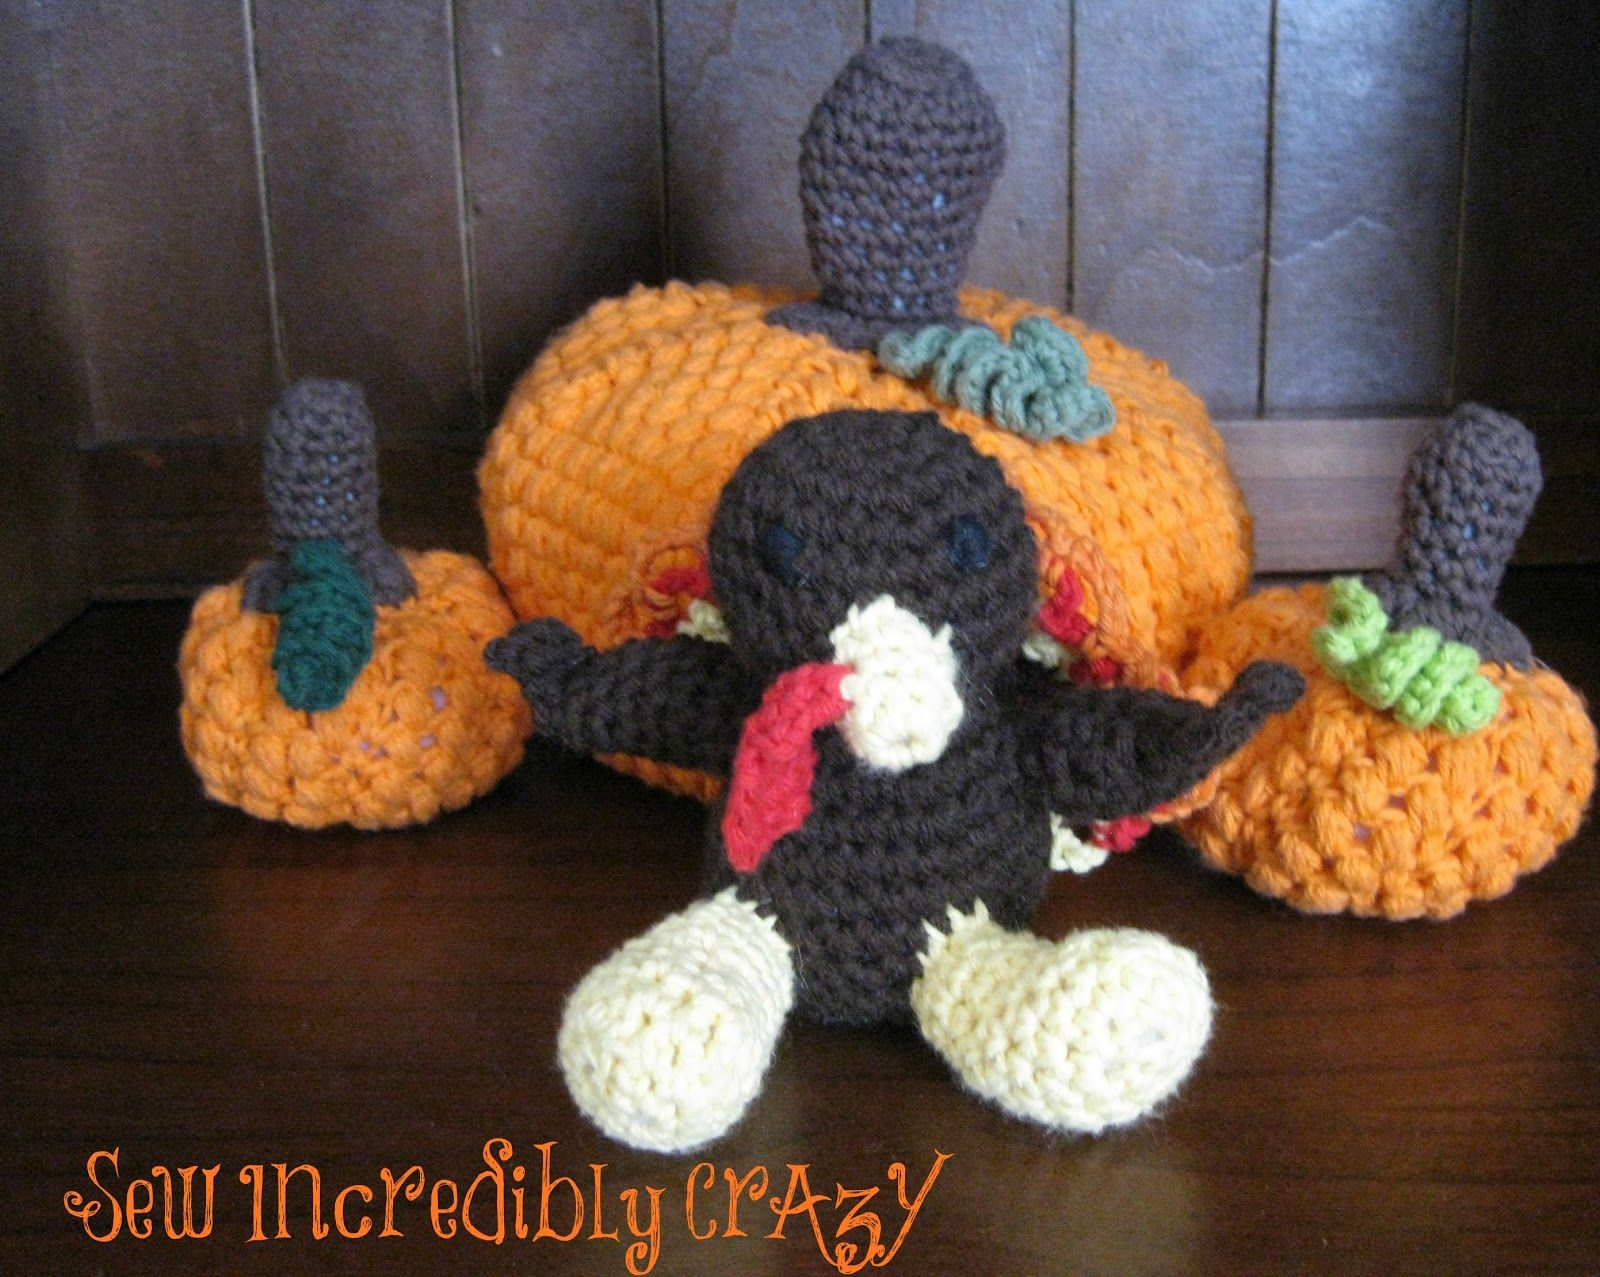 Sew Incredibly Crazy: Pumpkins and a Turkey